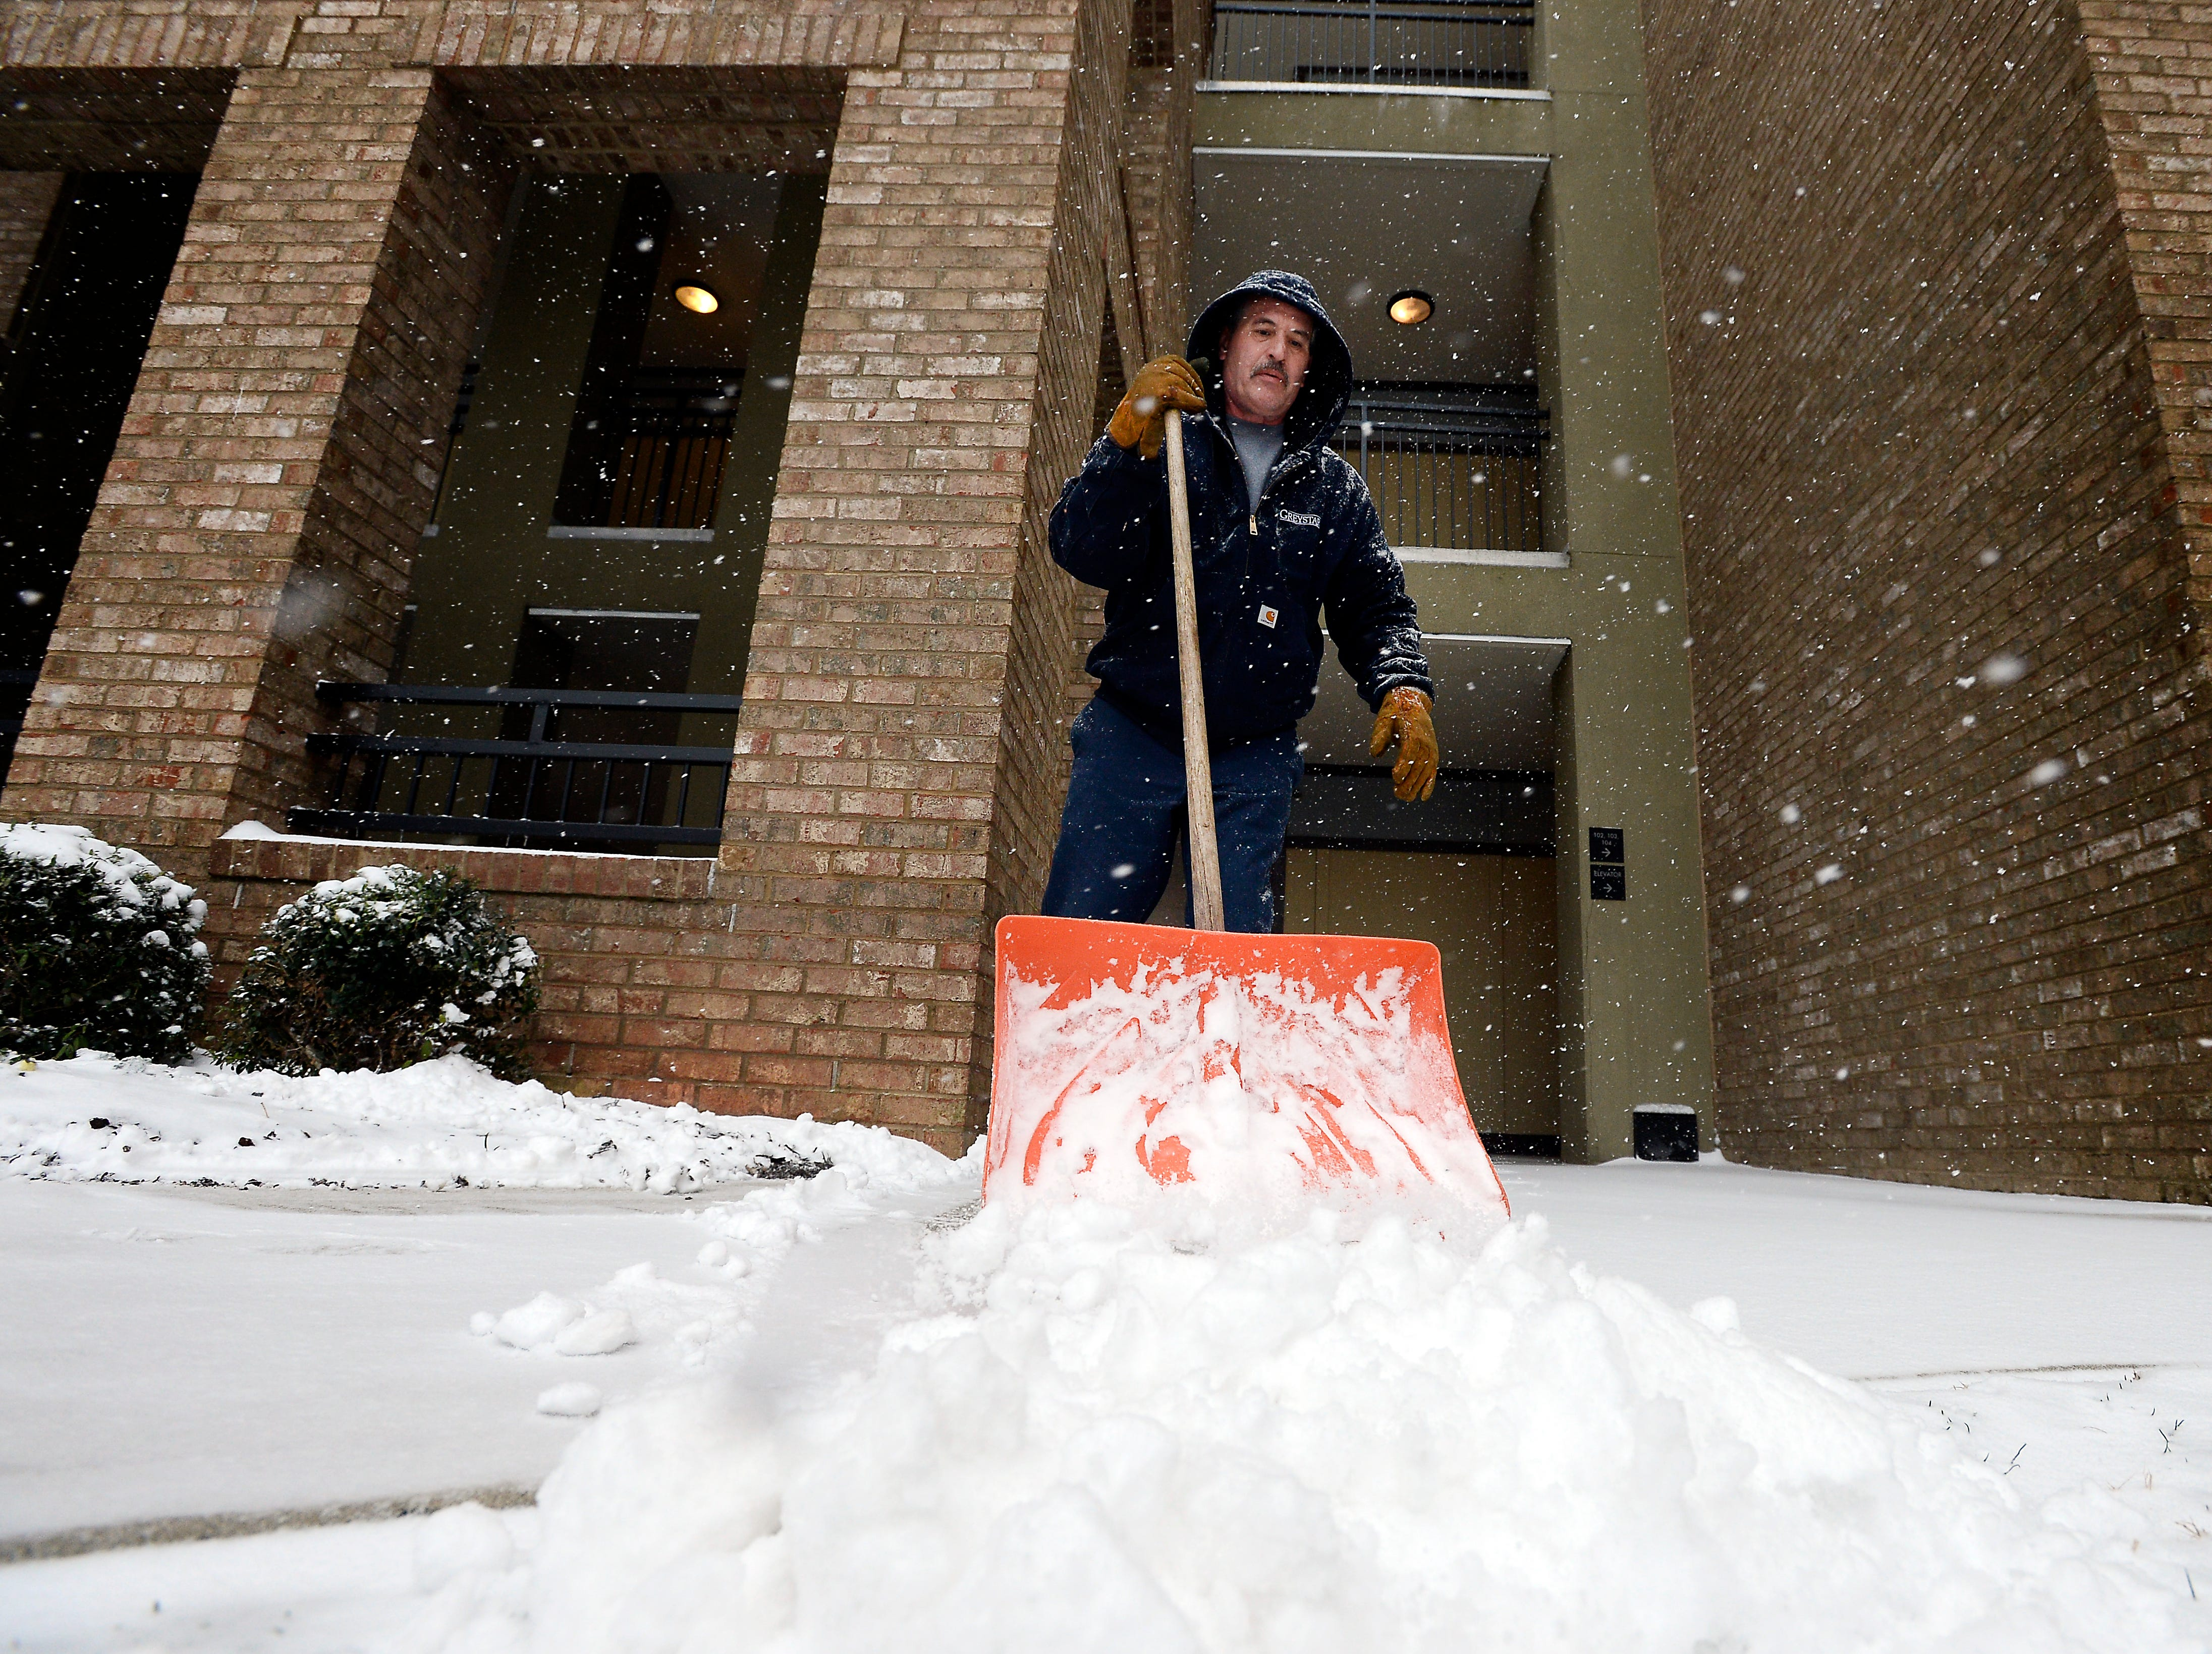 David Somerville, maintenance supervisor at McBee Station, shovels snow from the apartment sidewalks on Wednesday, February 12, 2014. somerville